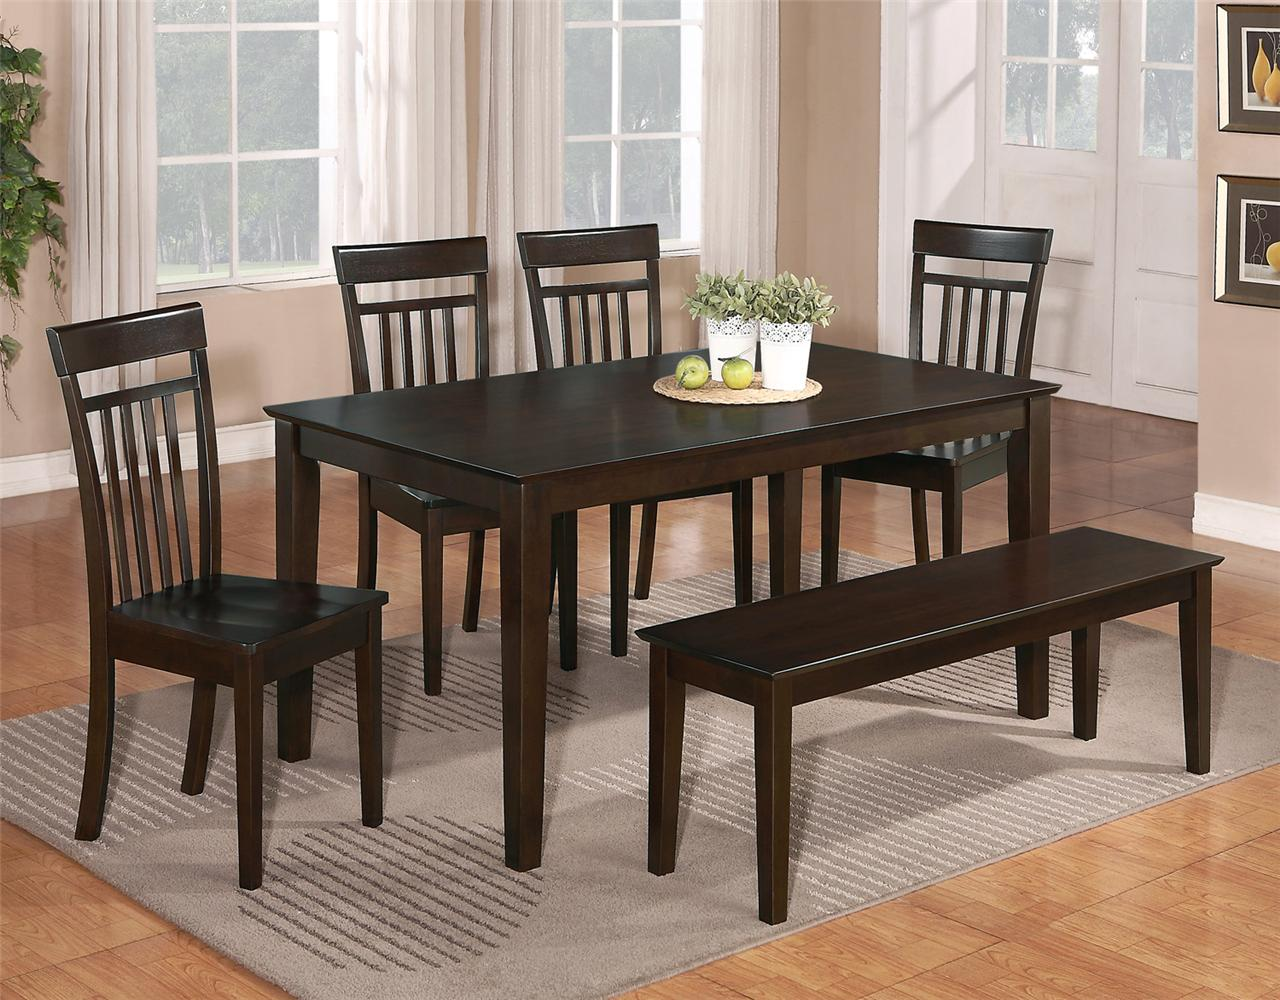 6 pc dinette kitchen dining room set table w 4 wood chair for Dining table set designs